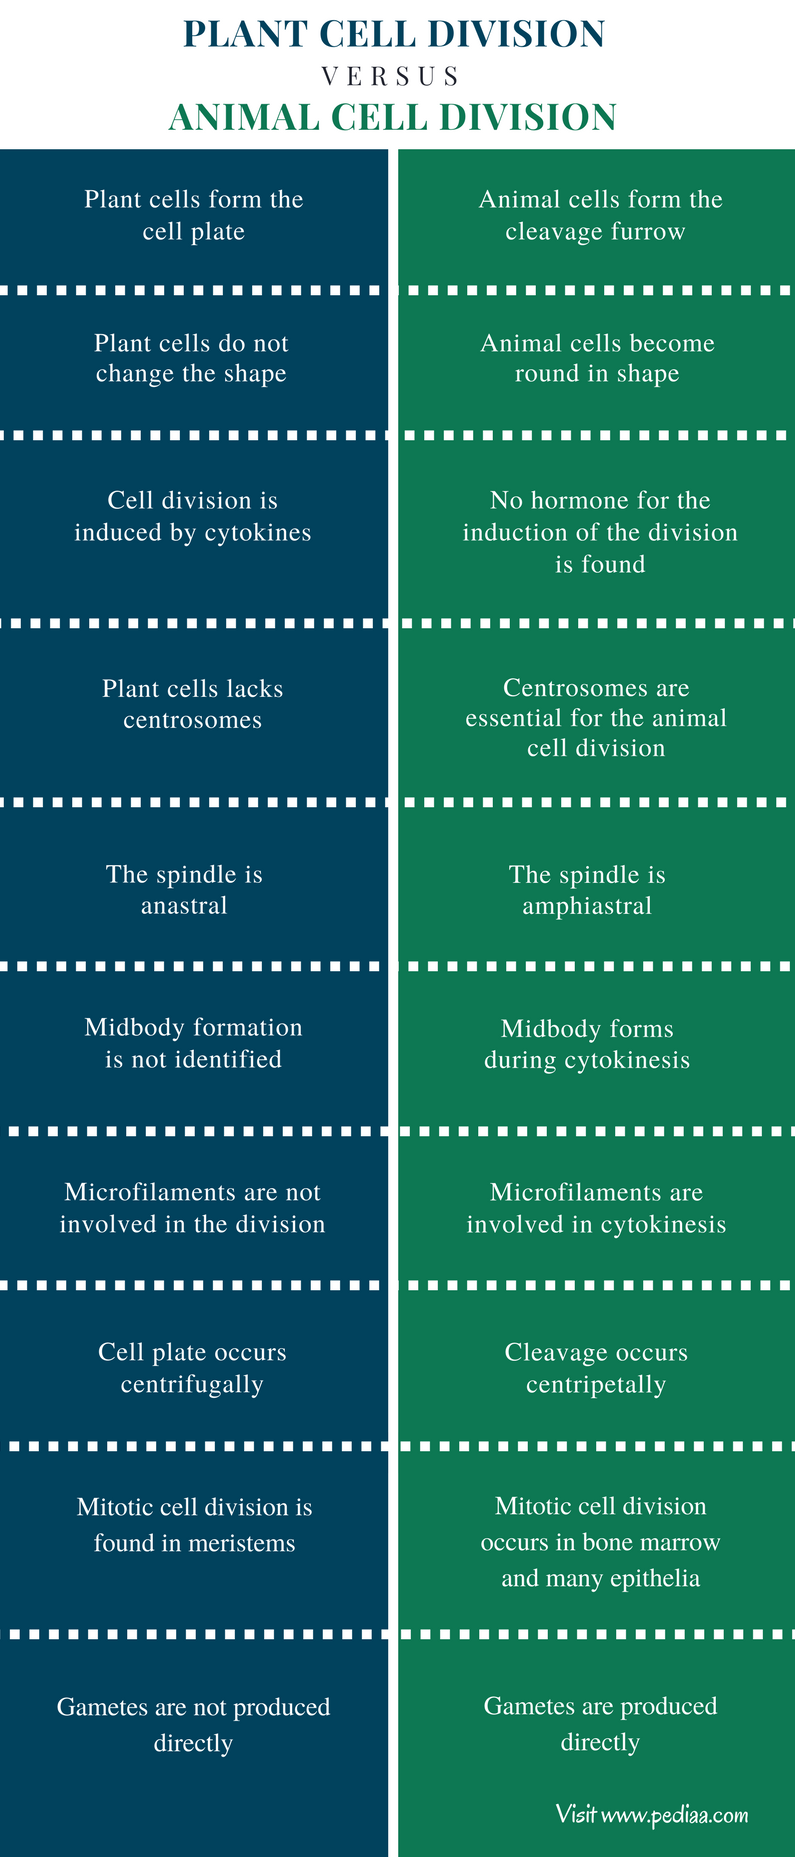 Difference Between Plant and Animal Cell Divisionn - Comparison Summary